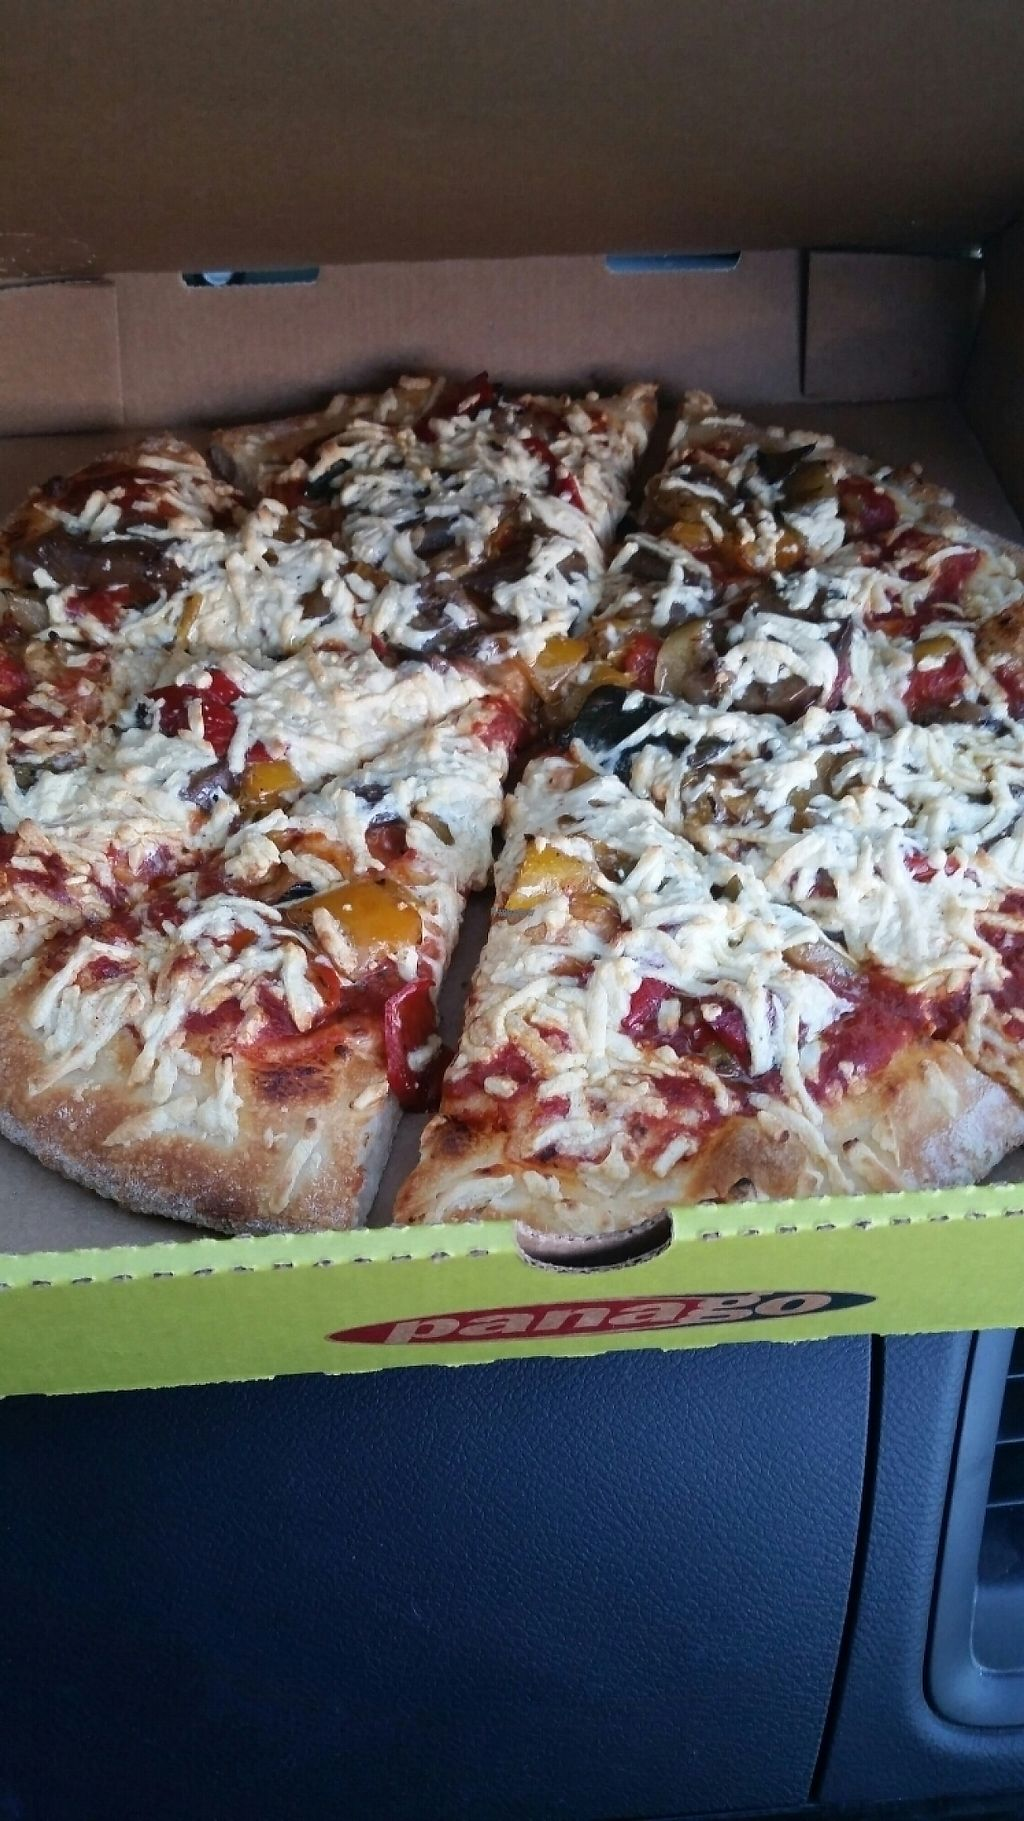 "Photo of Panago Pizza  by <a href=""/members/profile/AnnaluSkyfire"">AnnaluSkyfire</a> <br/>amazing vegan pizza <br/> November 12, 2016  - <a href='/contact/abuse/image/72269/189070'>Report</a>"